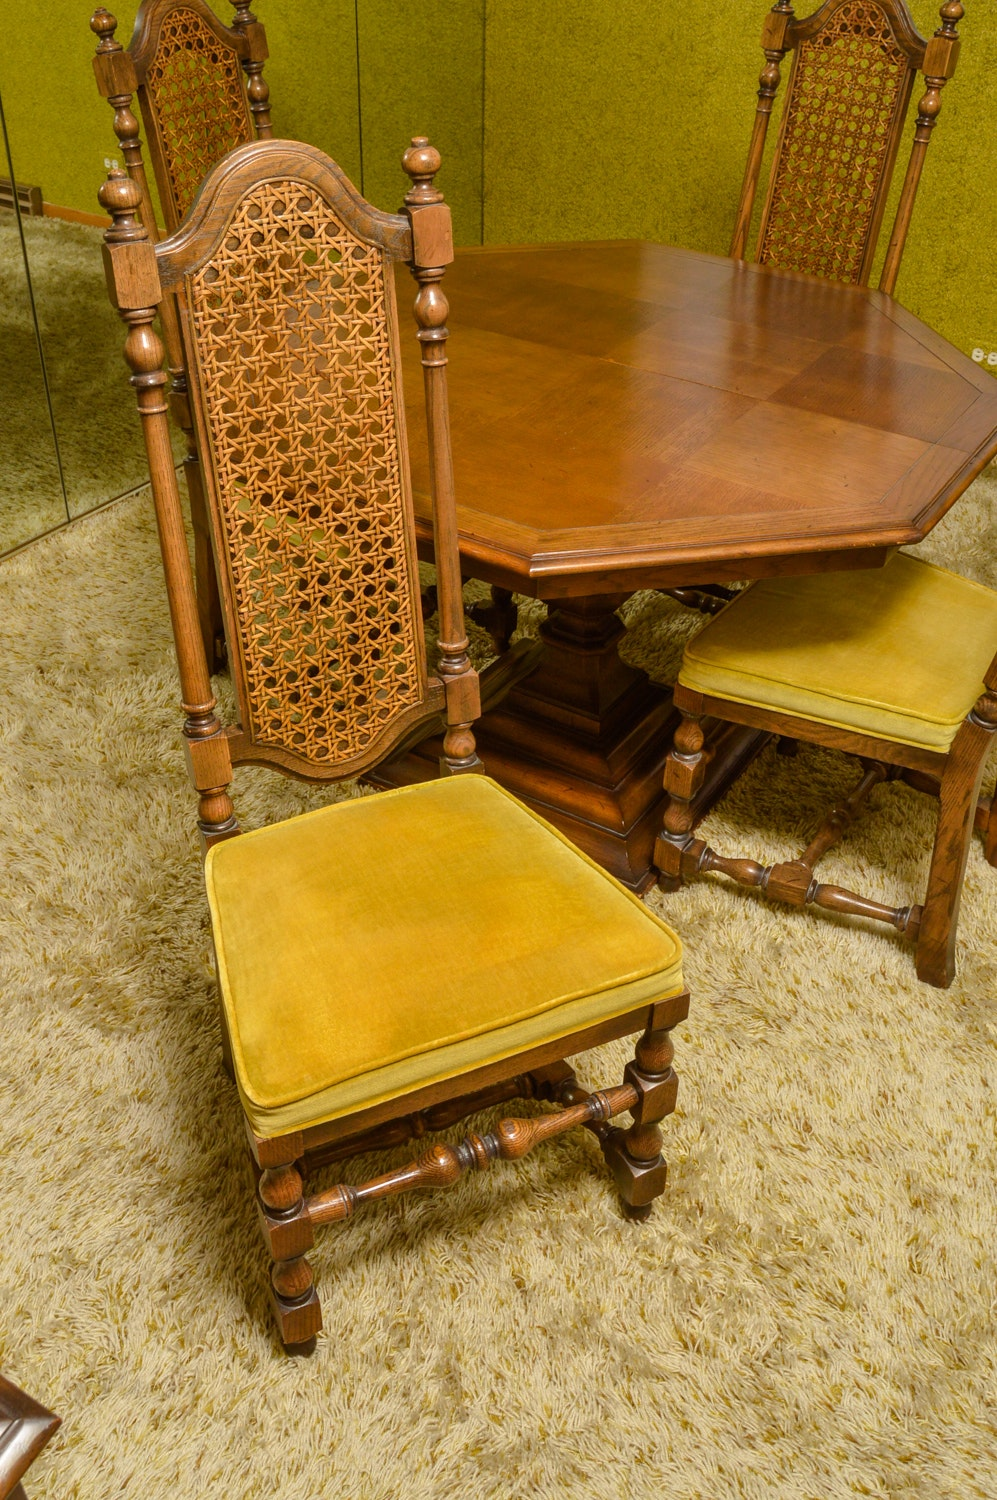 Vintage Jacobean Style Extension Dining Table and Chairs  : BS 207jpgixlibrb 11 from www.ebth.com size 585 x 880 jpeg 179kB